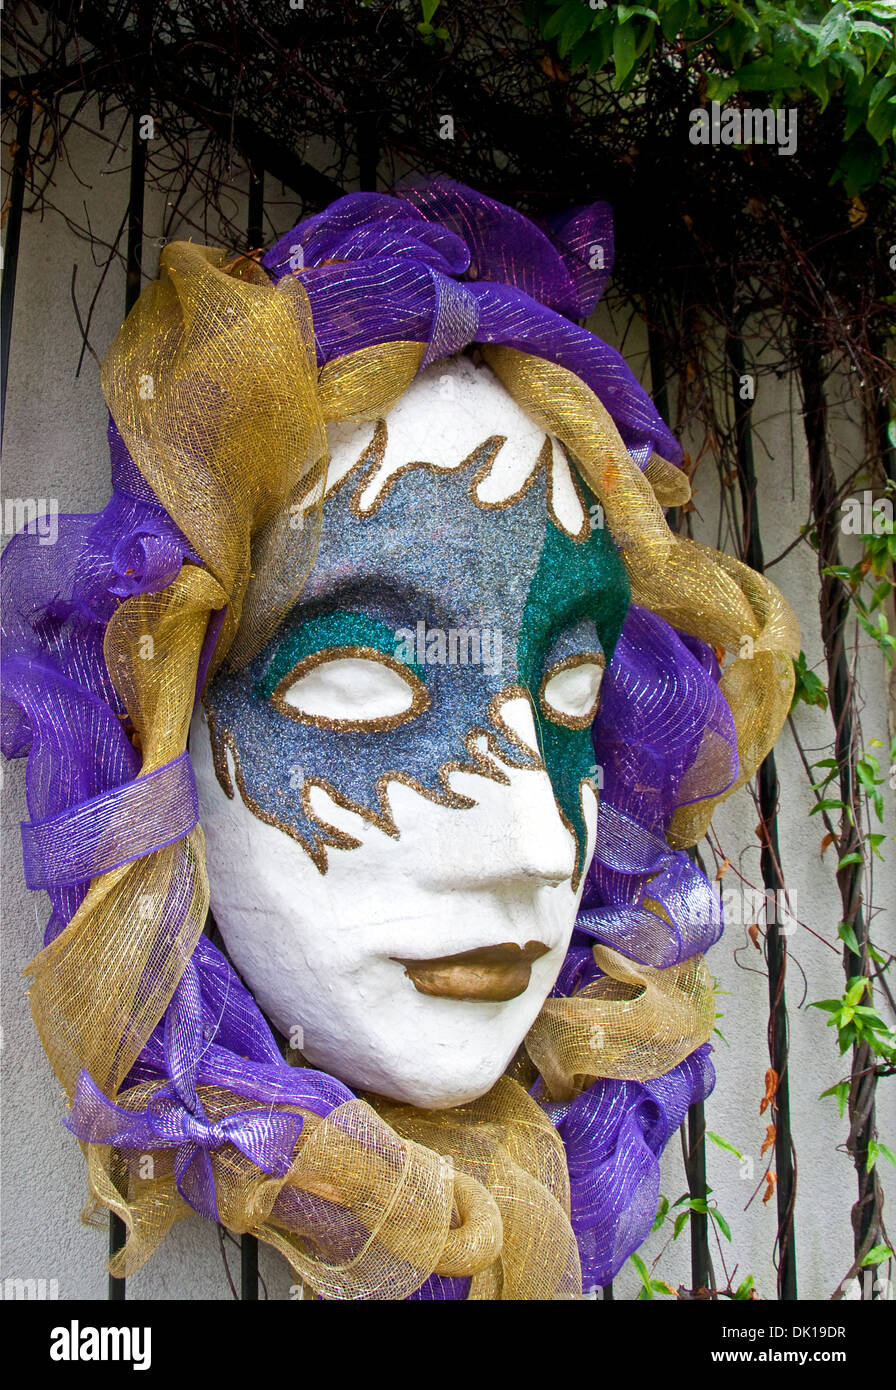 Mardi Gras mask at entrance of Mobile Carnival Museum. - Stock Image